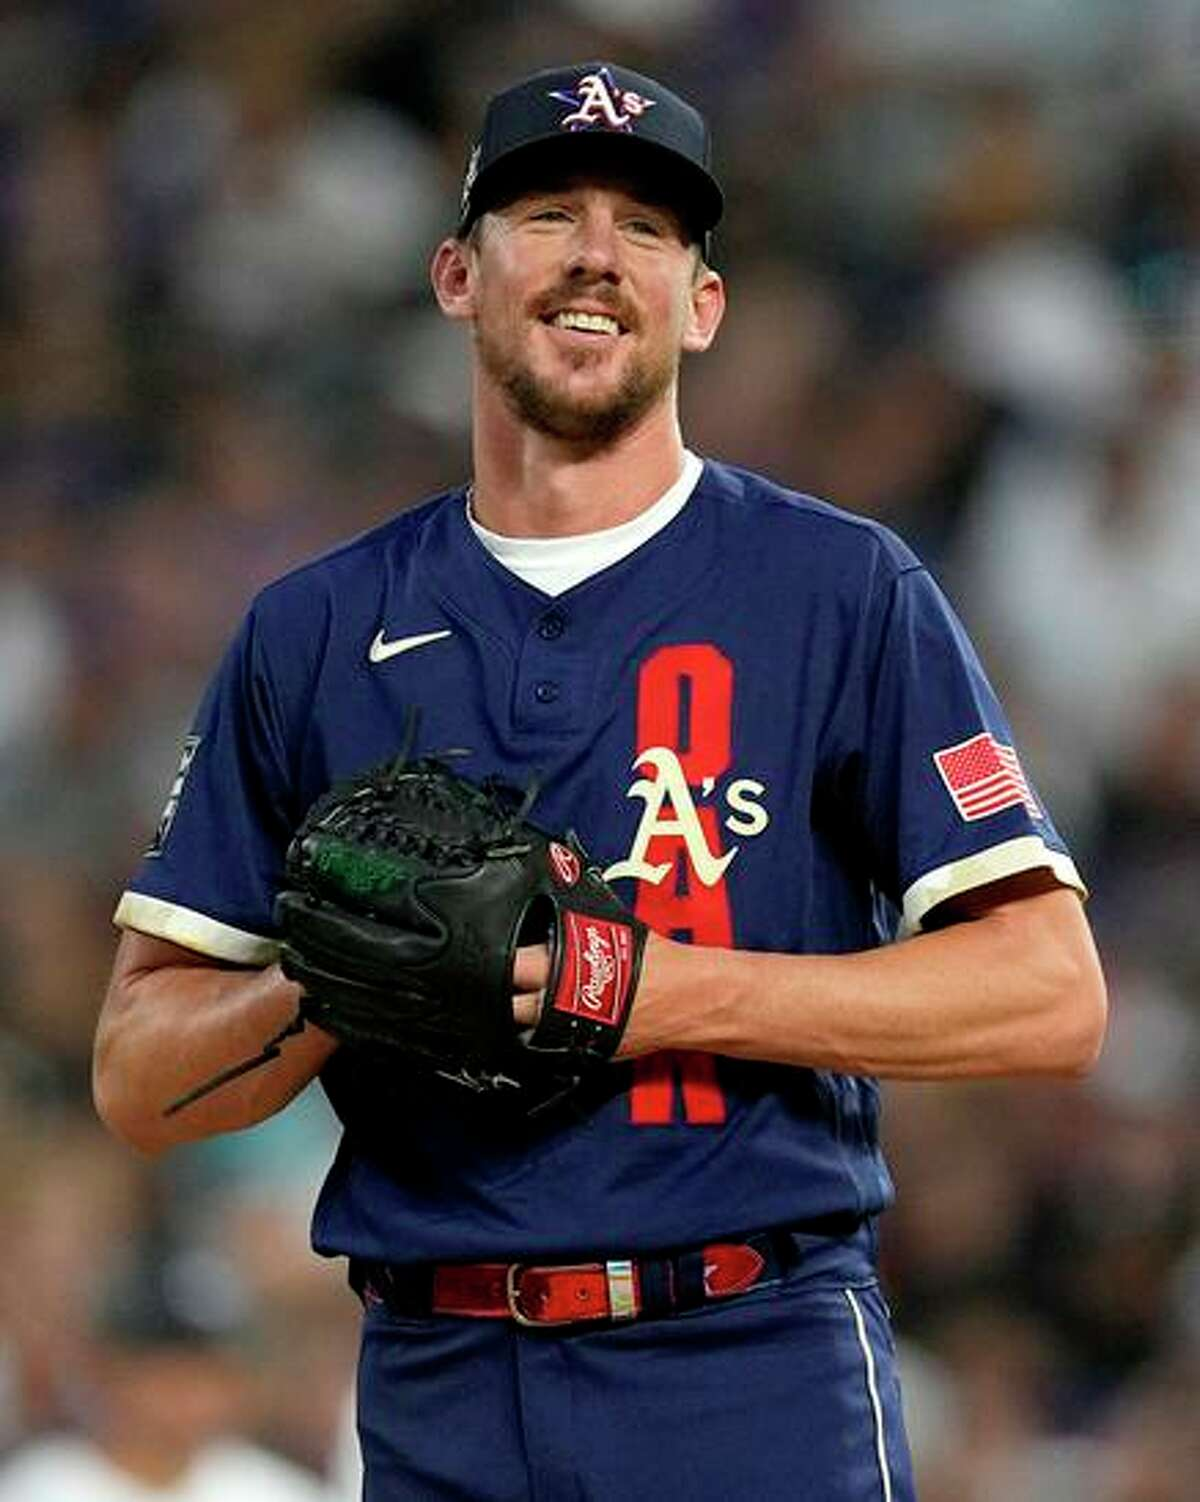 American League's Chris Bassitt of the Oakland Athletics smiles before his pitch during the sixth inning of the MLB All-Star baseball game, Tuesday, July 13, 2021, in Denver. (AP Photo/Jack Dempsey)